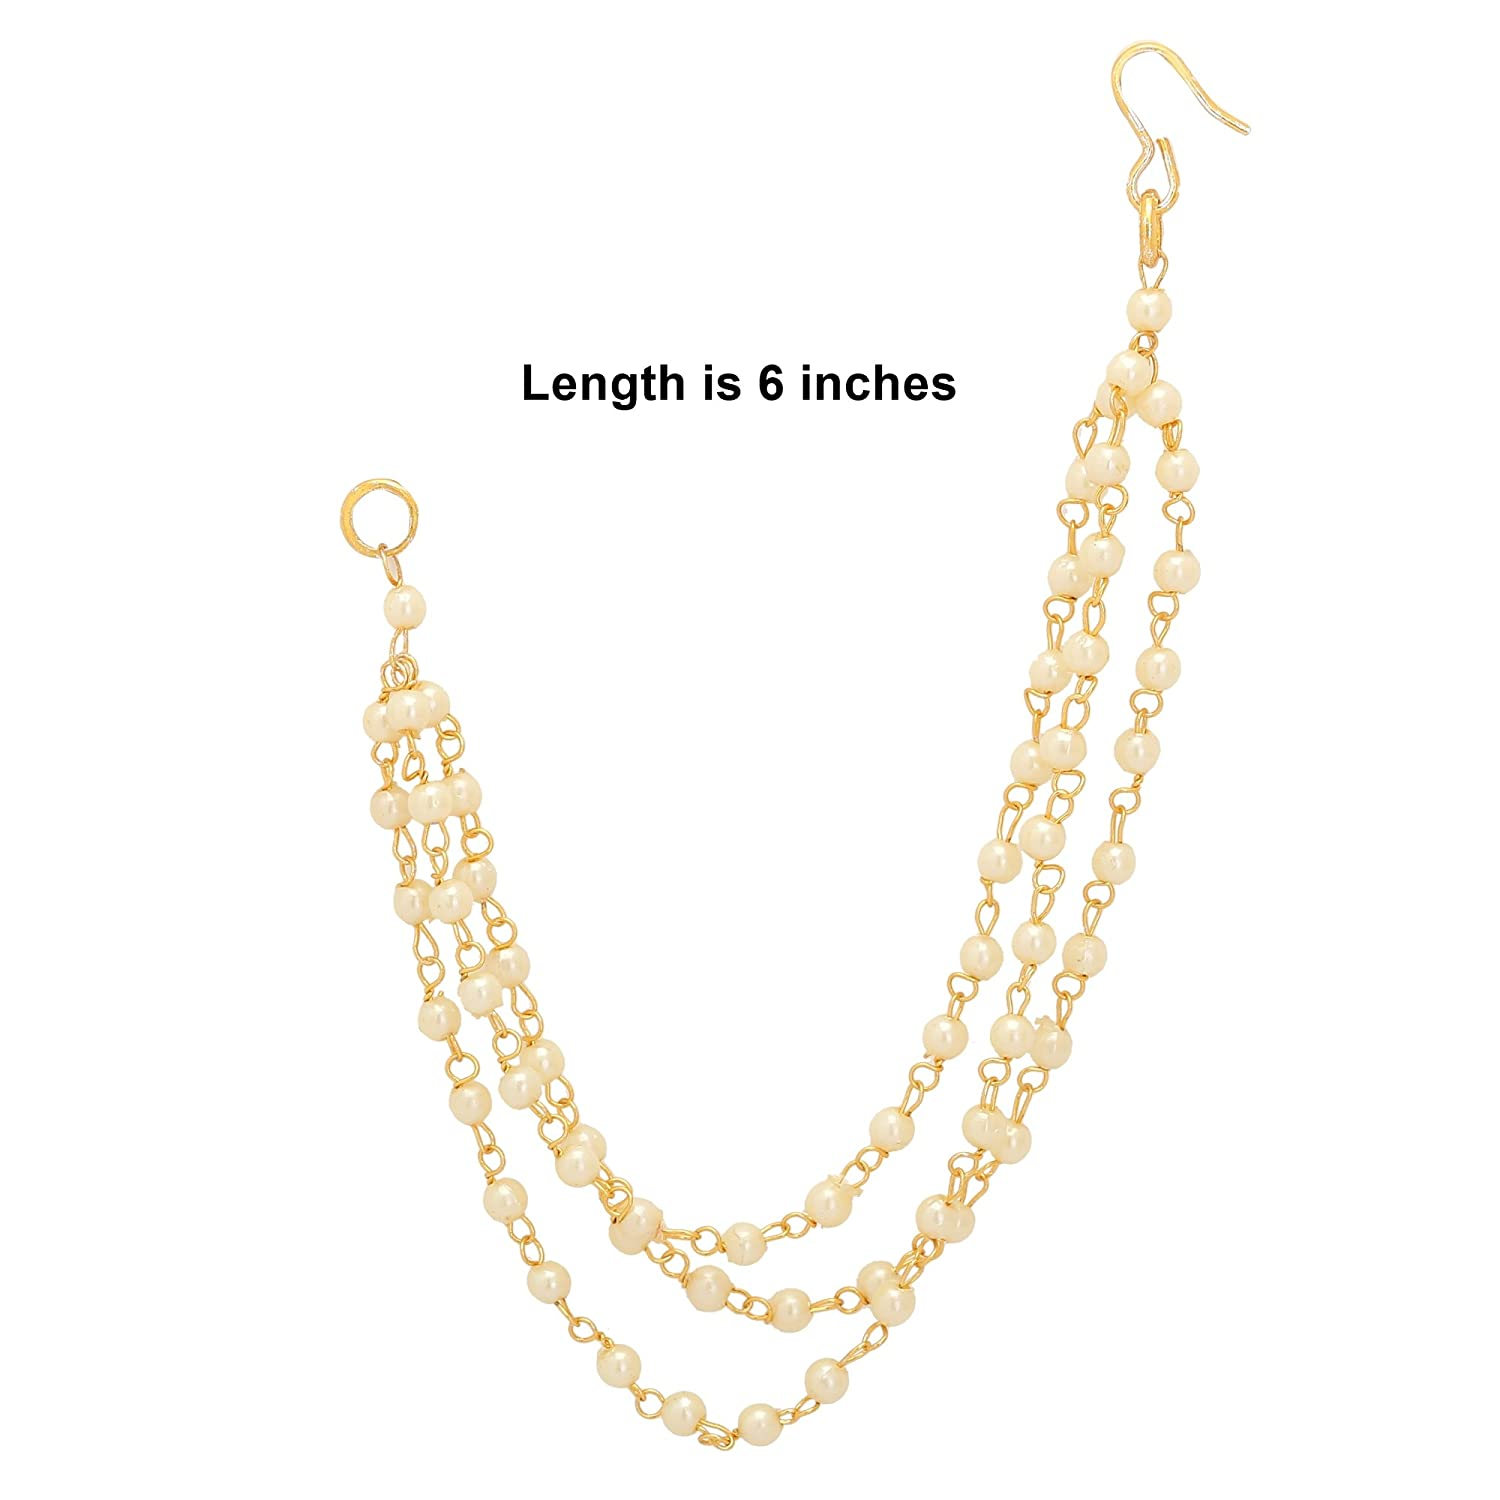 7b36b4c914a1b Jwellmart Indian Bollywood Gold Plated Faux Pearl Ear Chains for ...